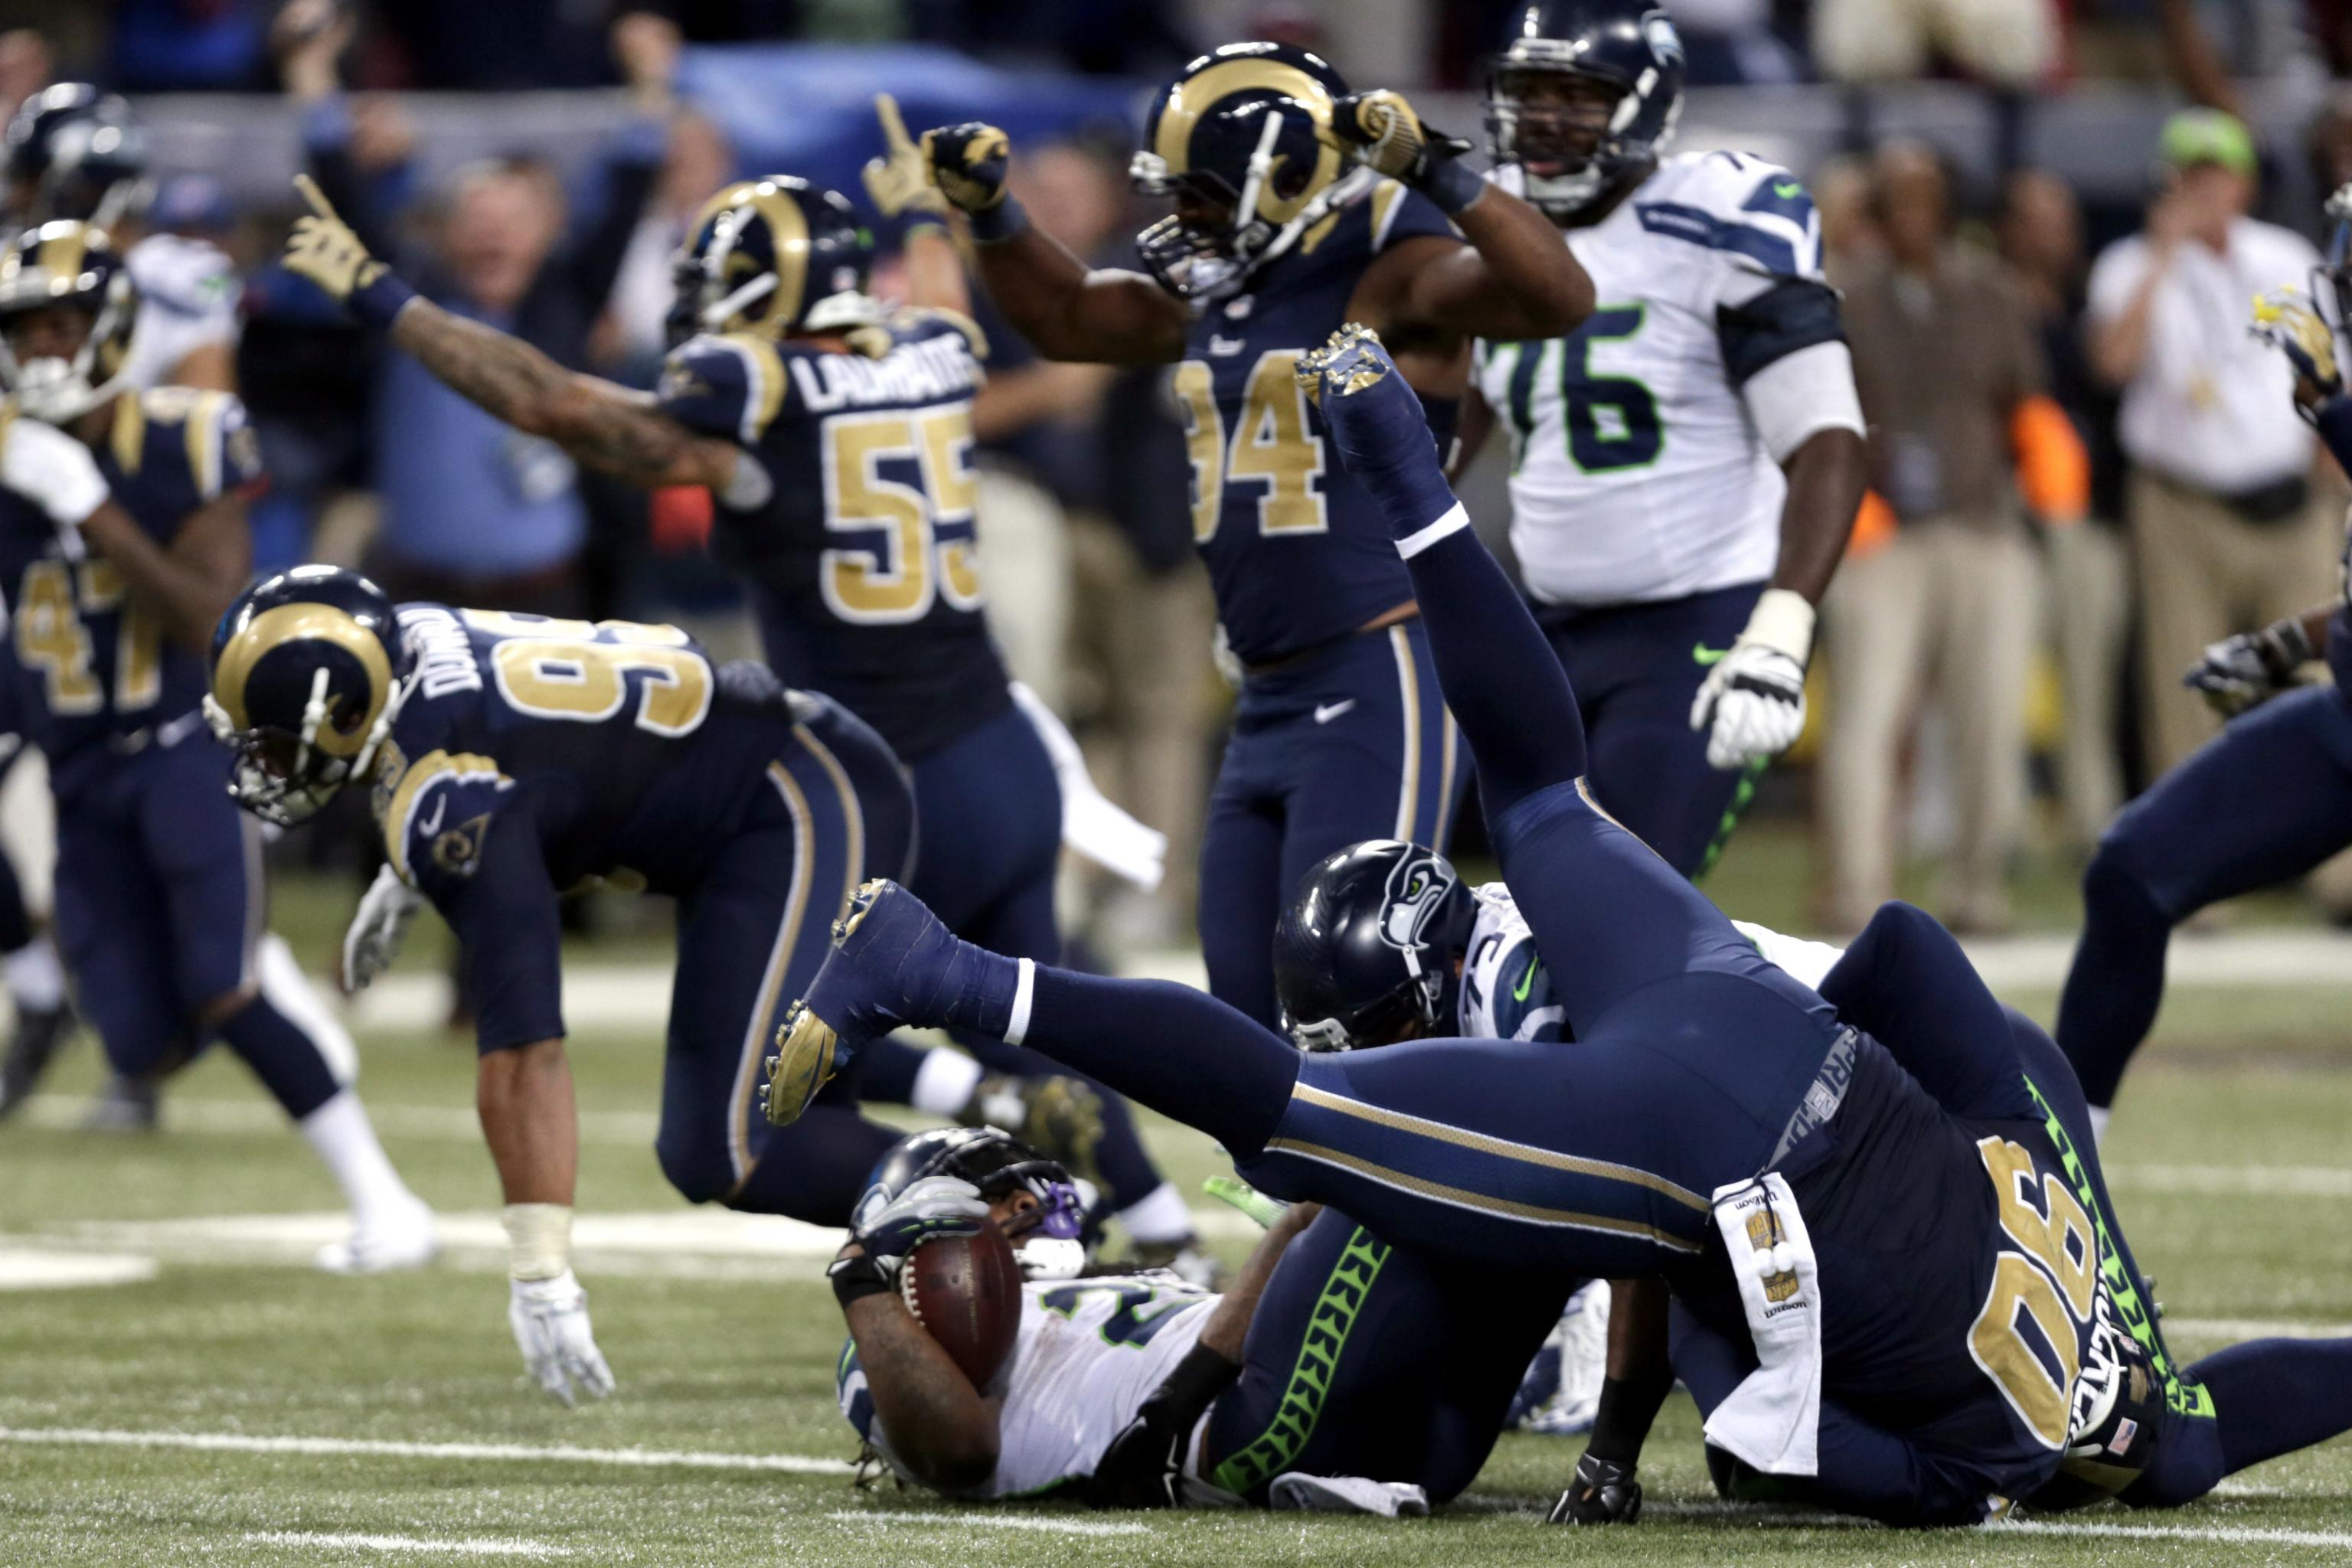 Seahawks Vs Rams Score And Twitter Reaction From 2015 Regular Season Bleacher Report Latest News Videos And Highlights